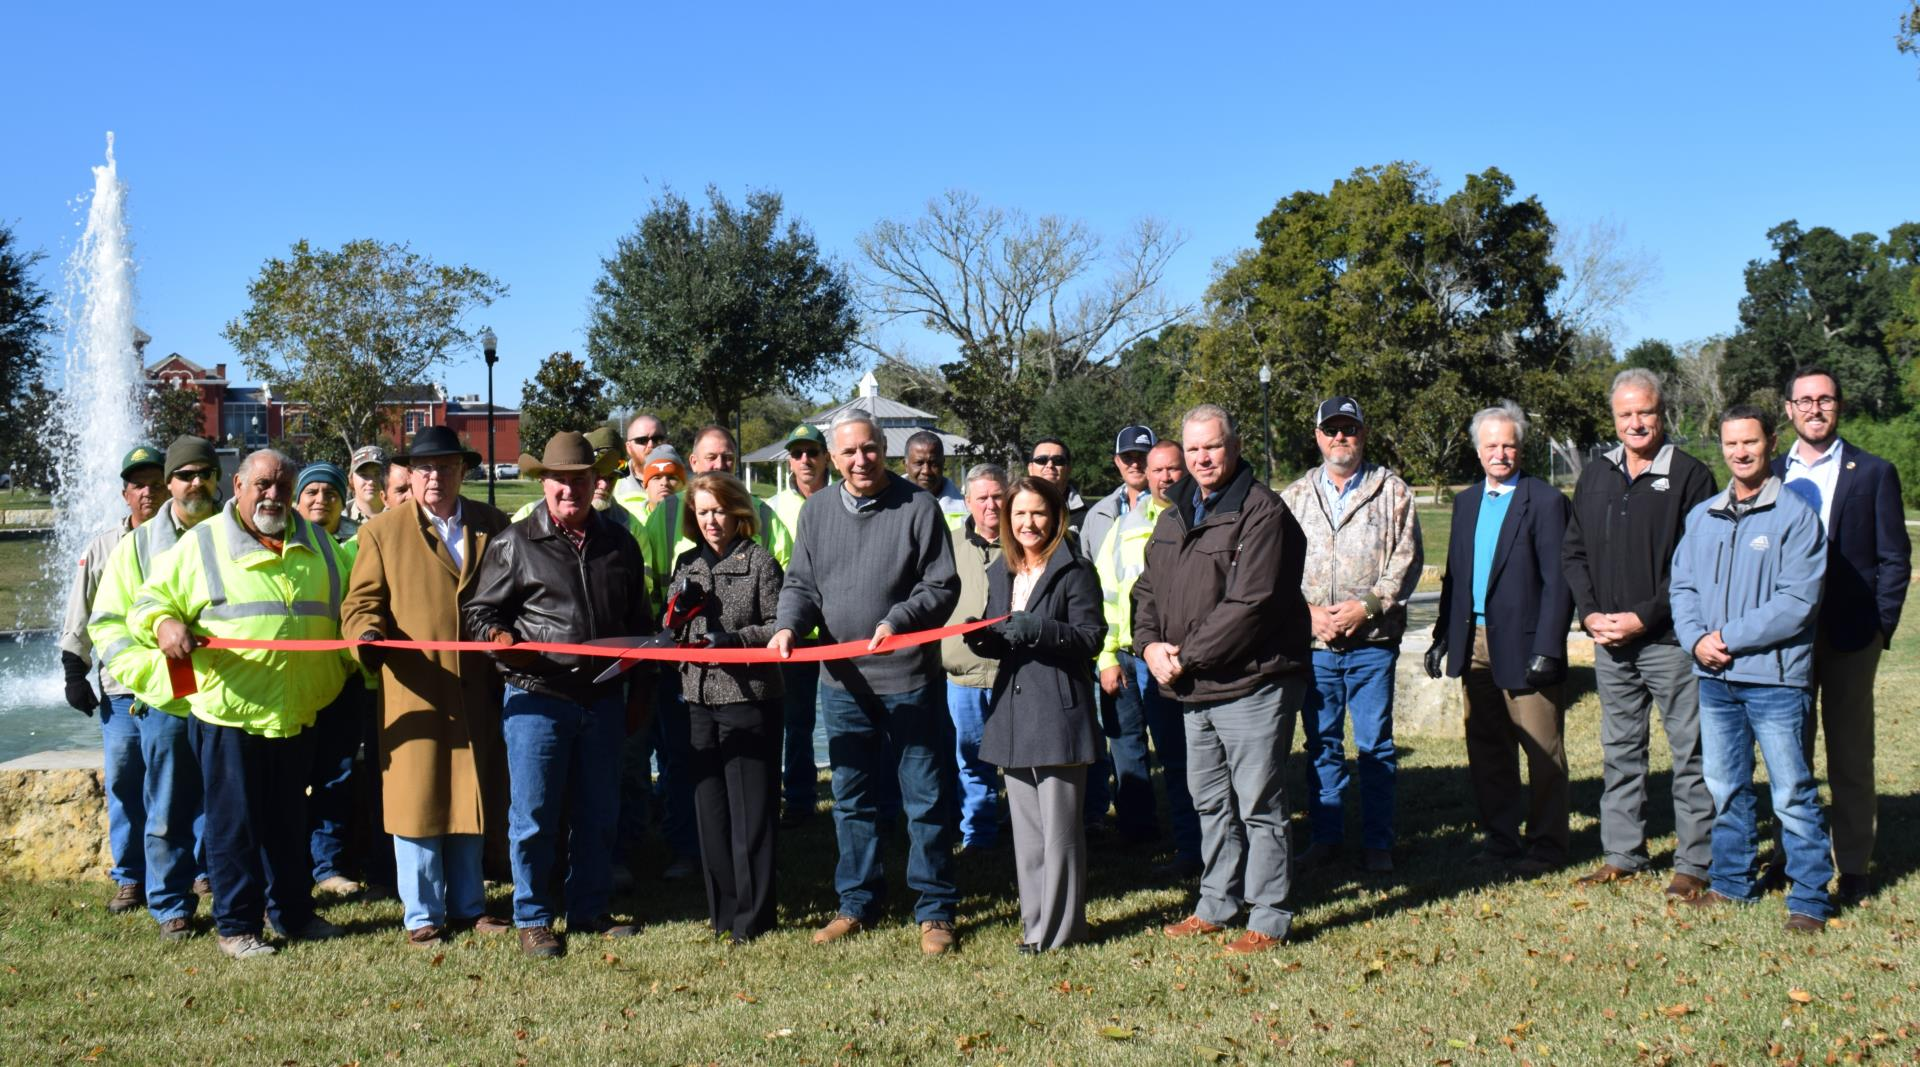 Wessendorff Park Fountain Ribbon cutting Nov. 15, 2018